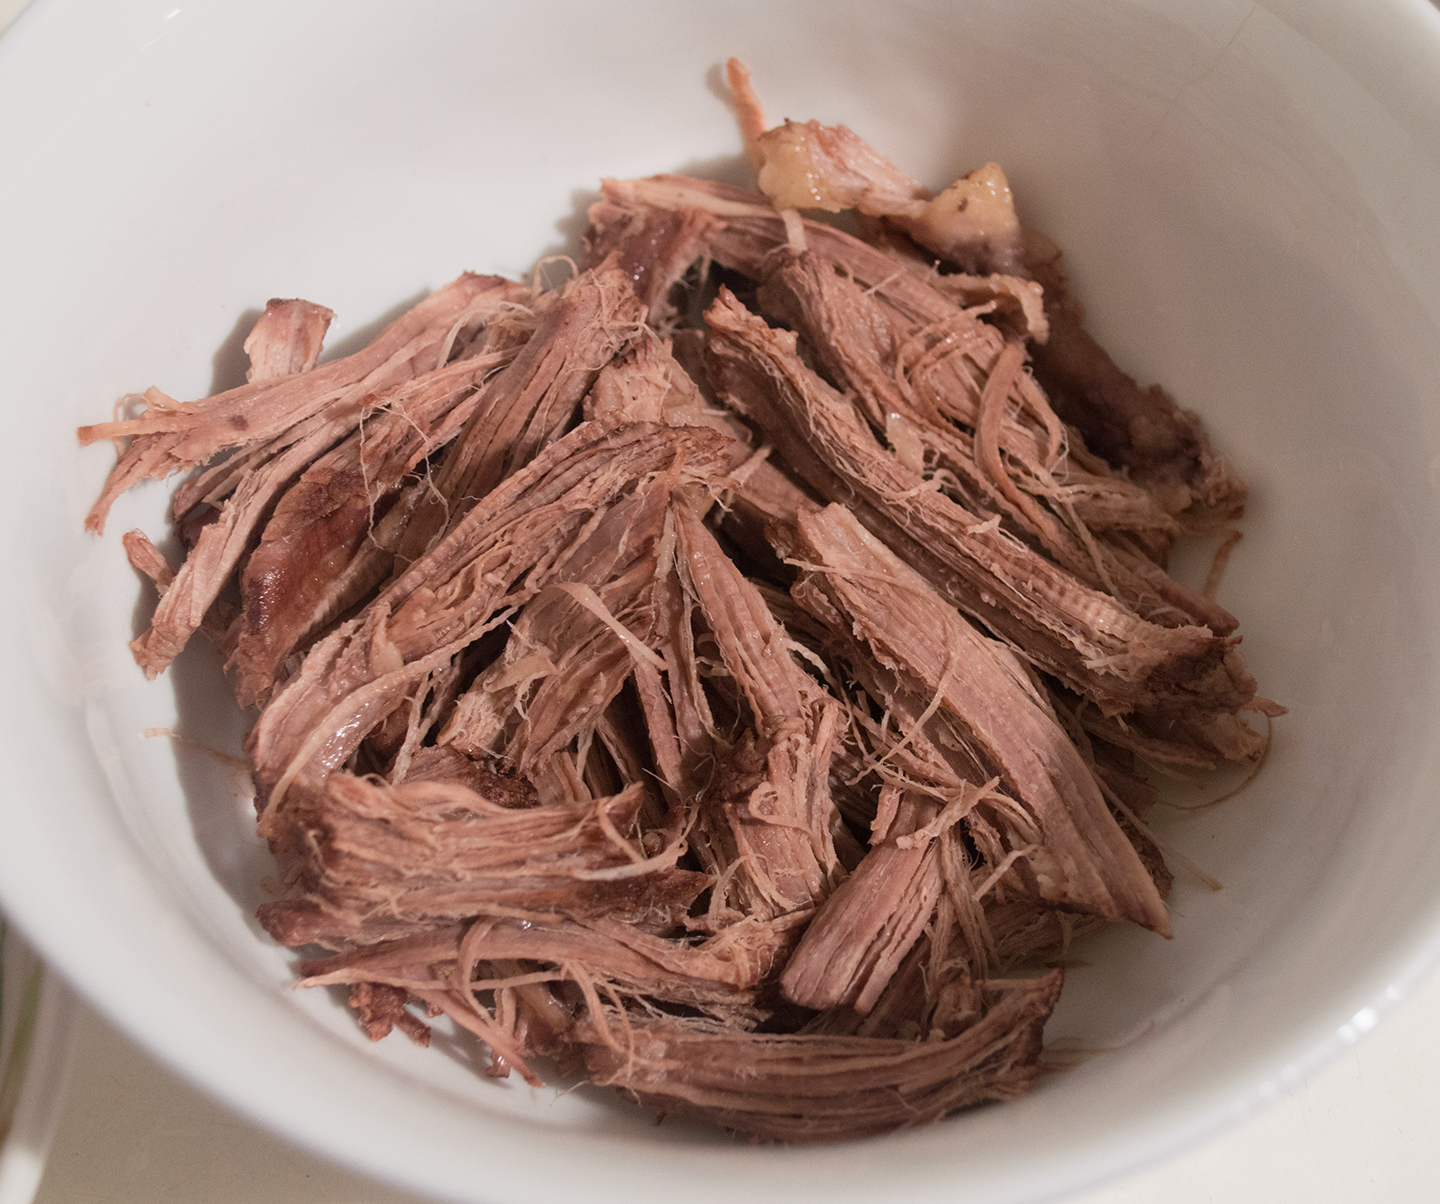 YGJ: Shredded Beef